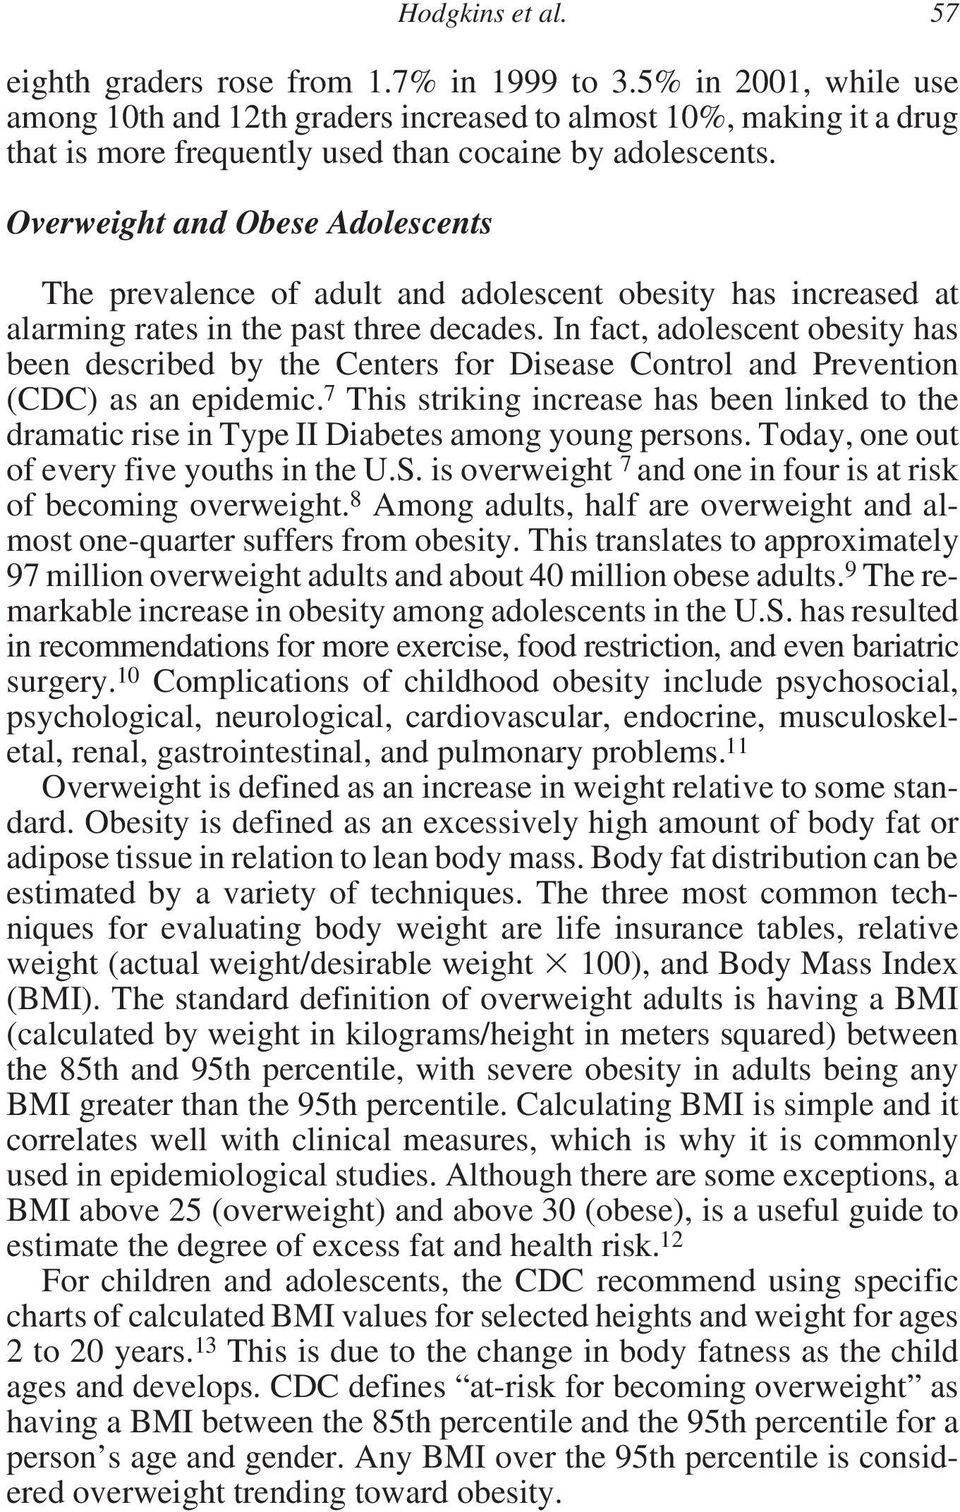 In fact, adolescent obesity has been described by the Centers for Disease Control and Prevention (CDC) as an epidemic.